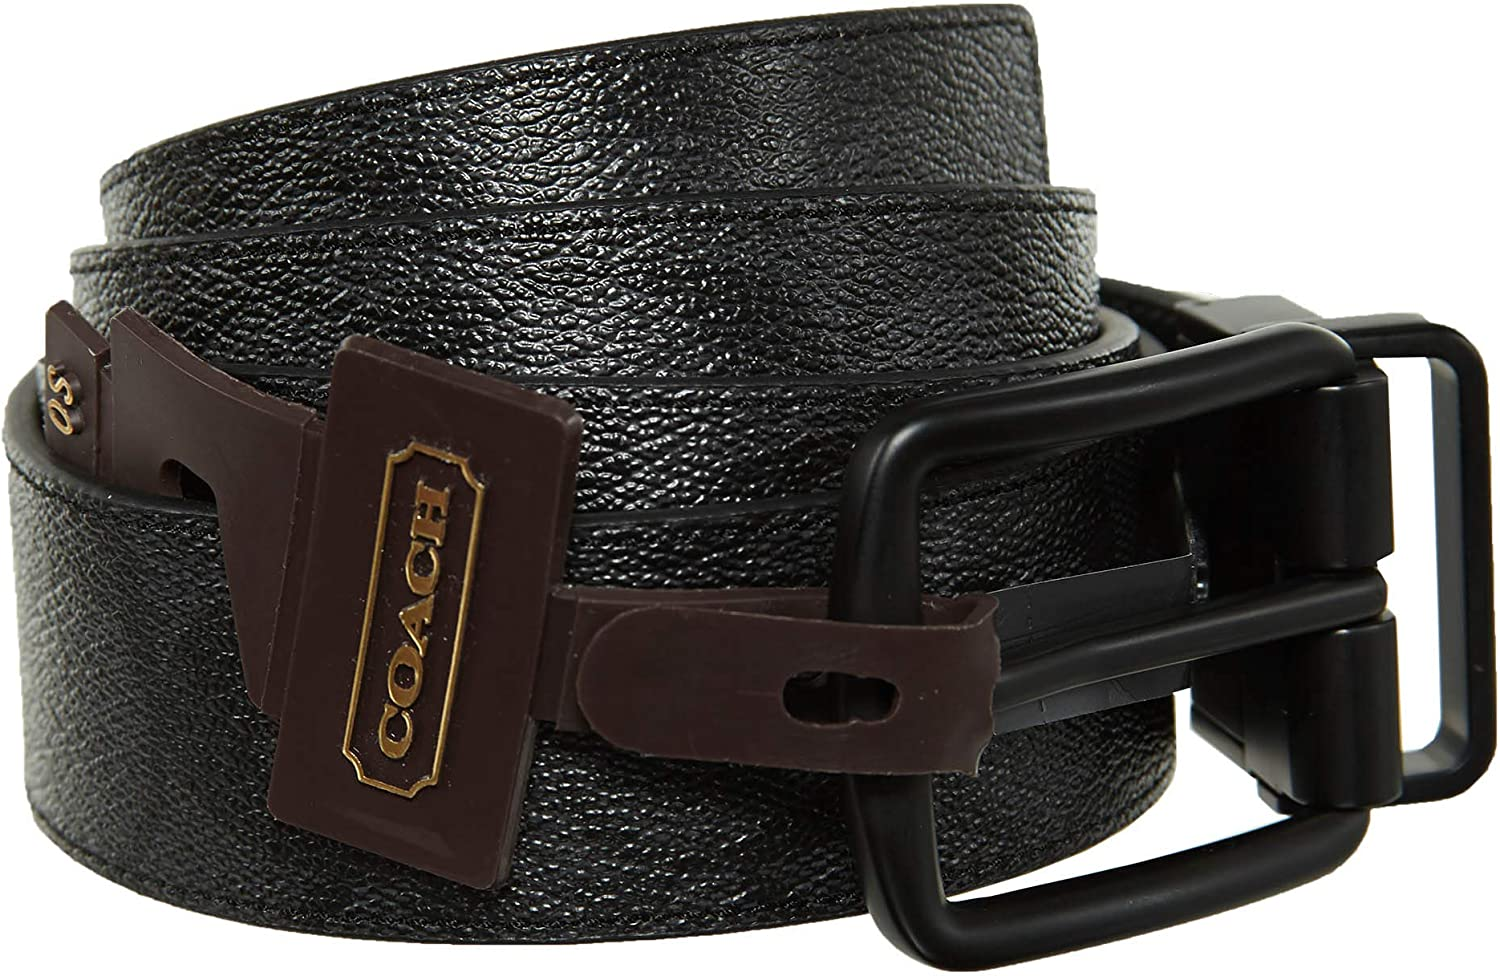 Coach Heritage Signature Coated Canvas Reversible Belt 64825 Charcoal Black